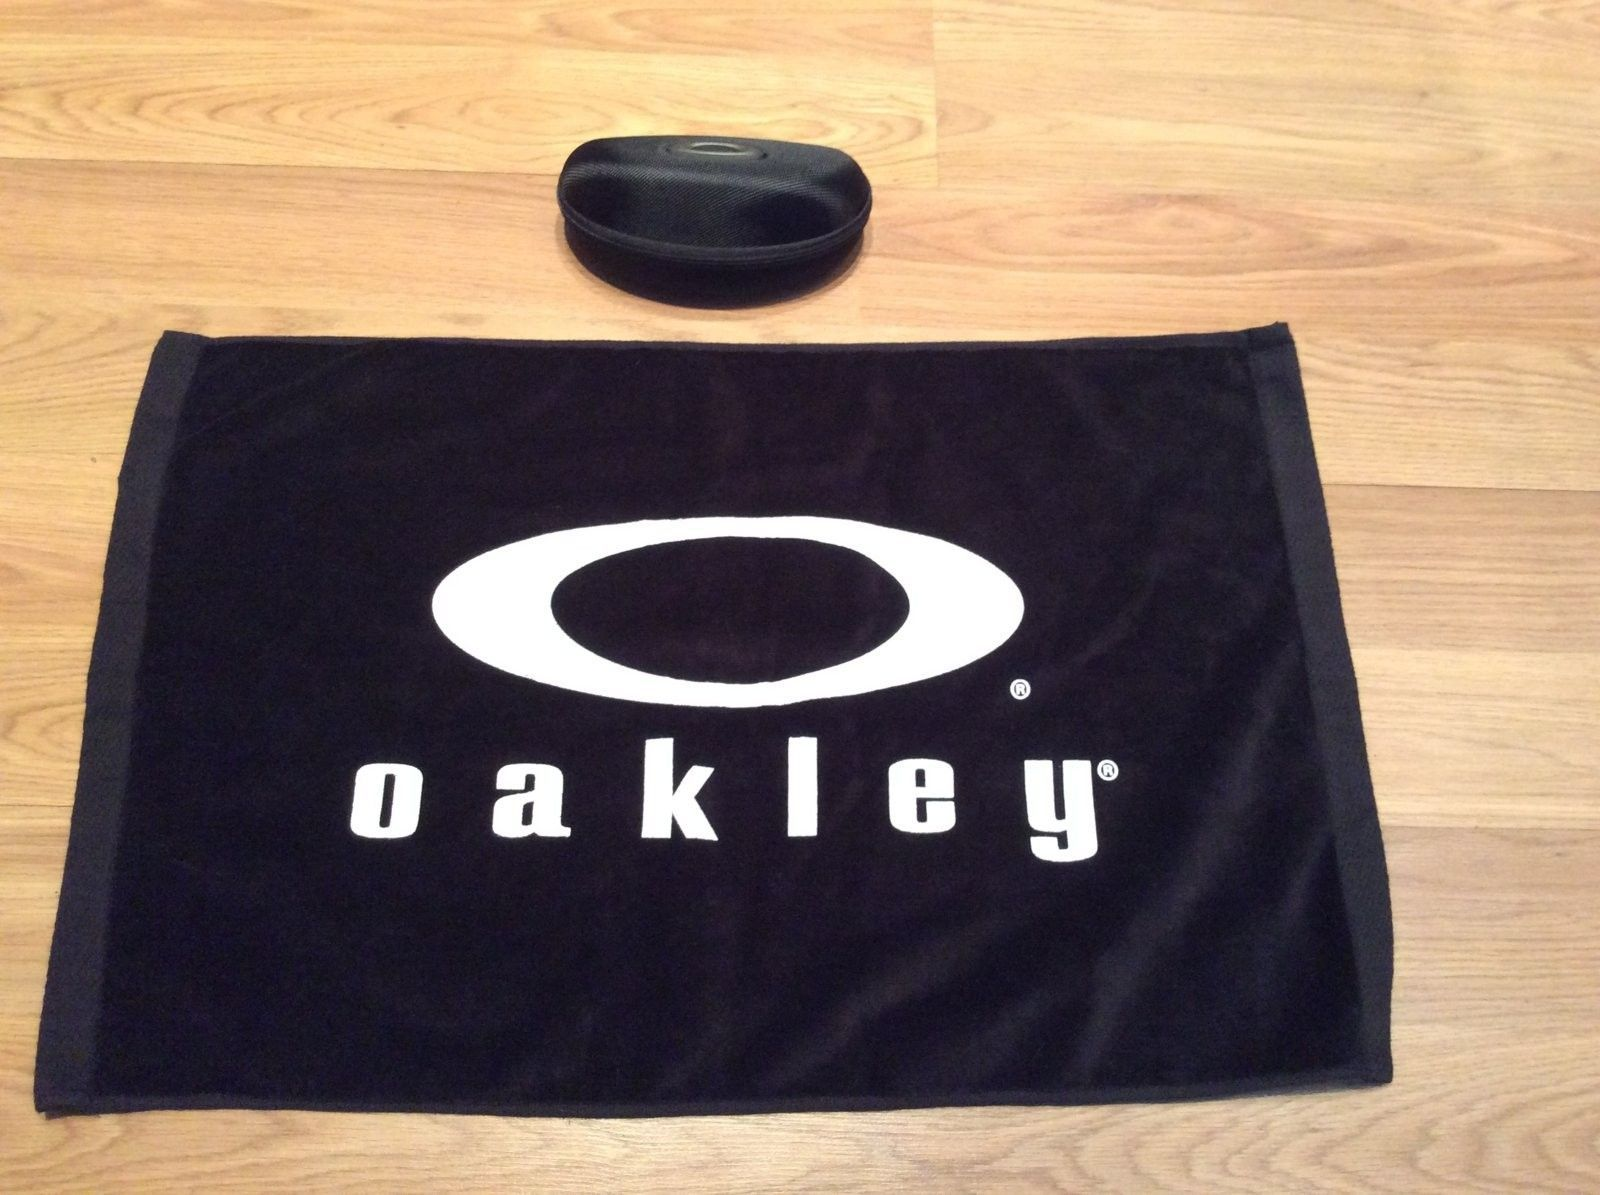 O Gym Towel $25 shipped - image.jpeg